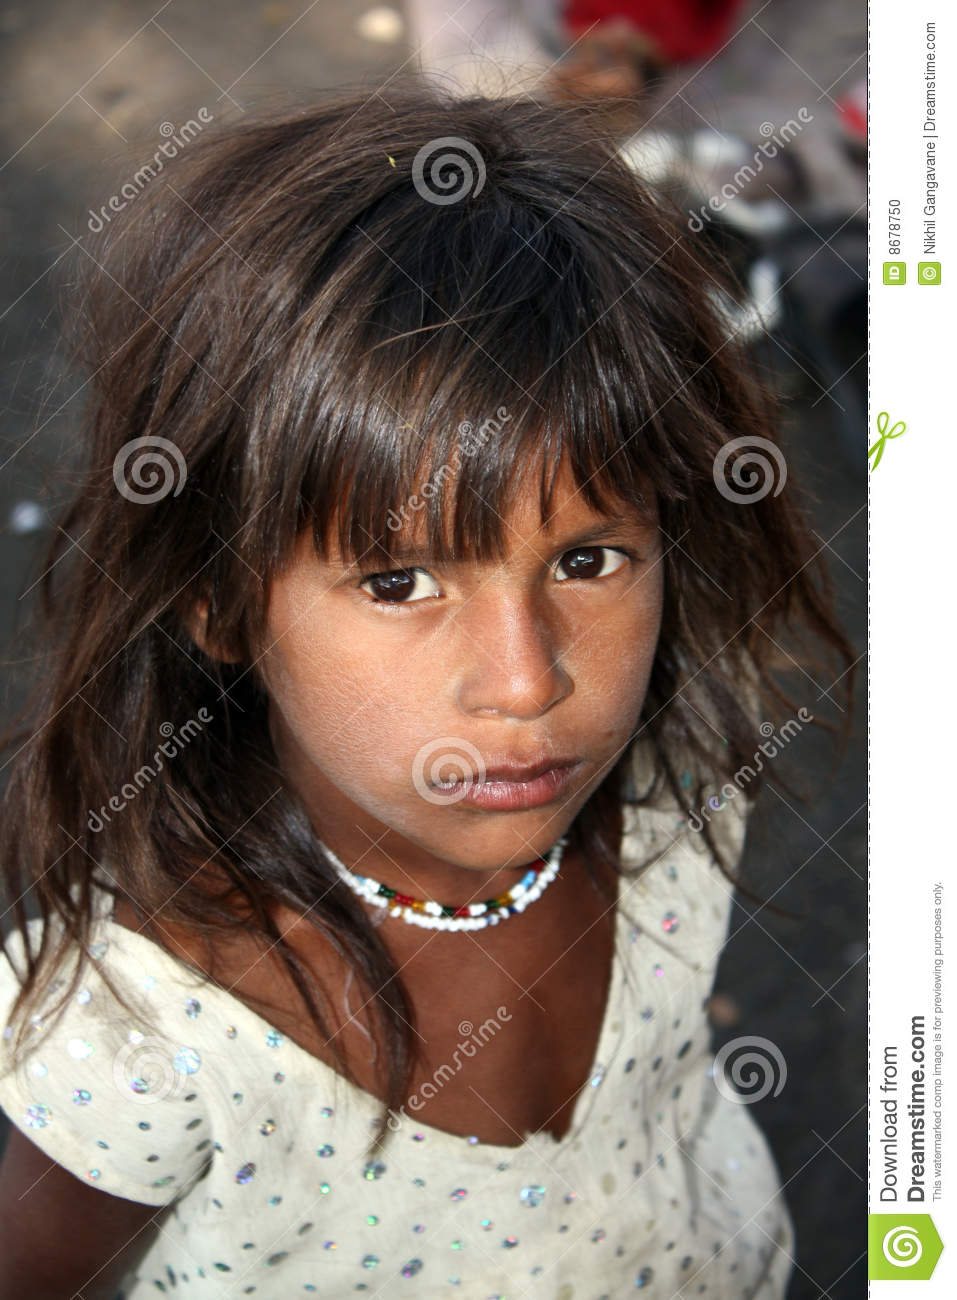 Was closeup nud indian girl phrase, matchless)))